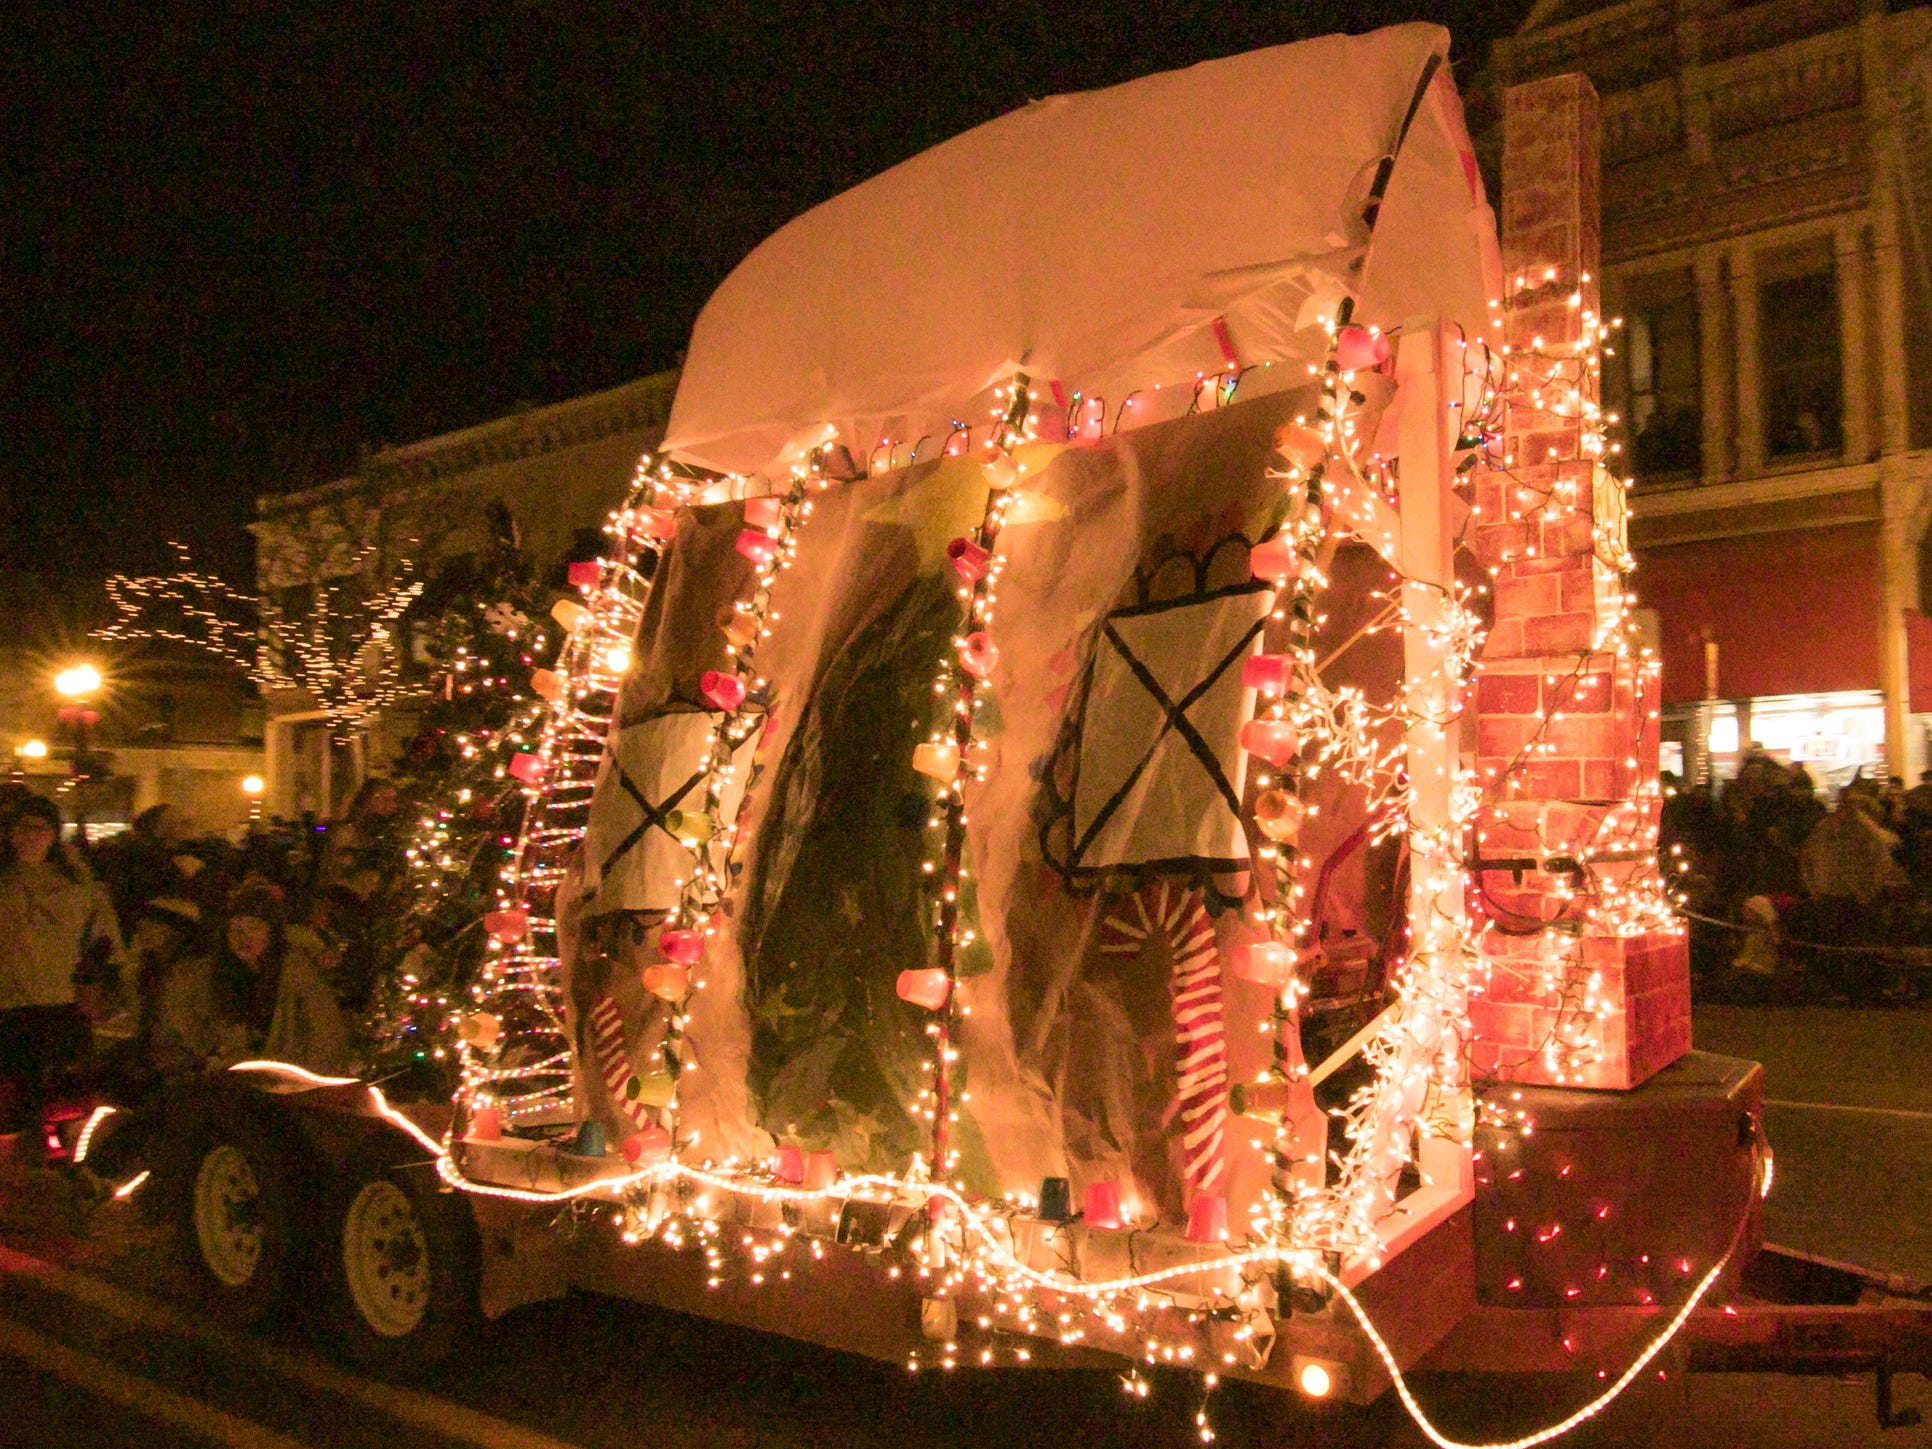 A float provided by Kensington Woods Schools moves down Grand River in the Fantasy of Lights parade Friday, Nov. 23, 2018.